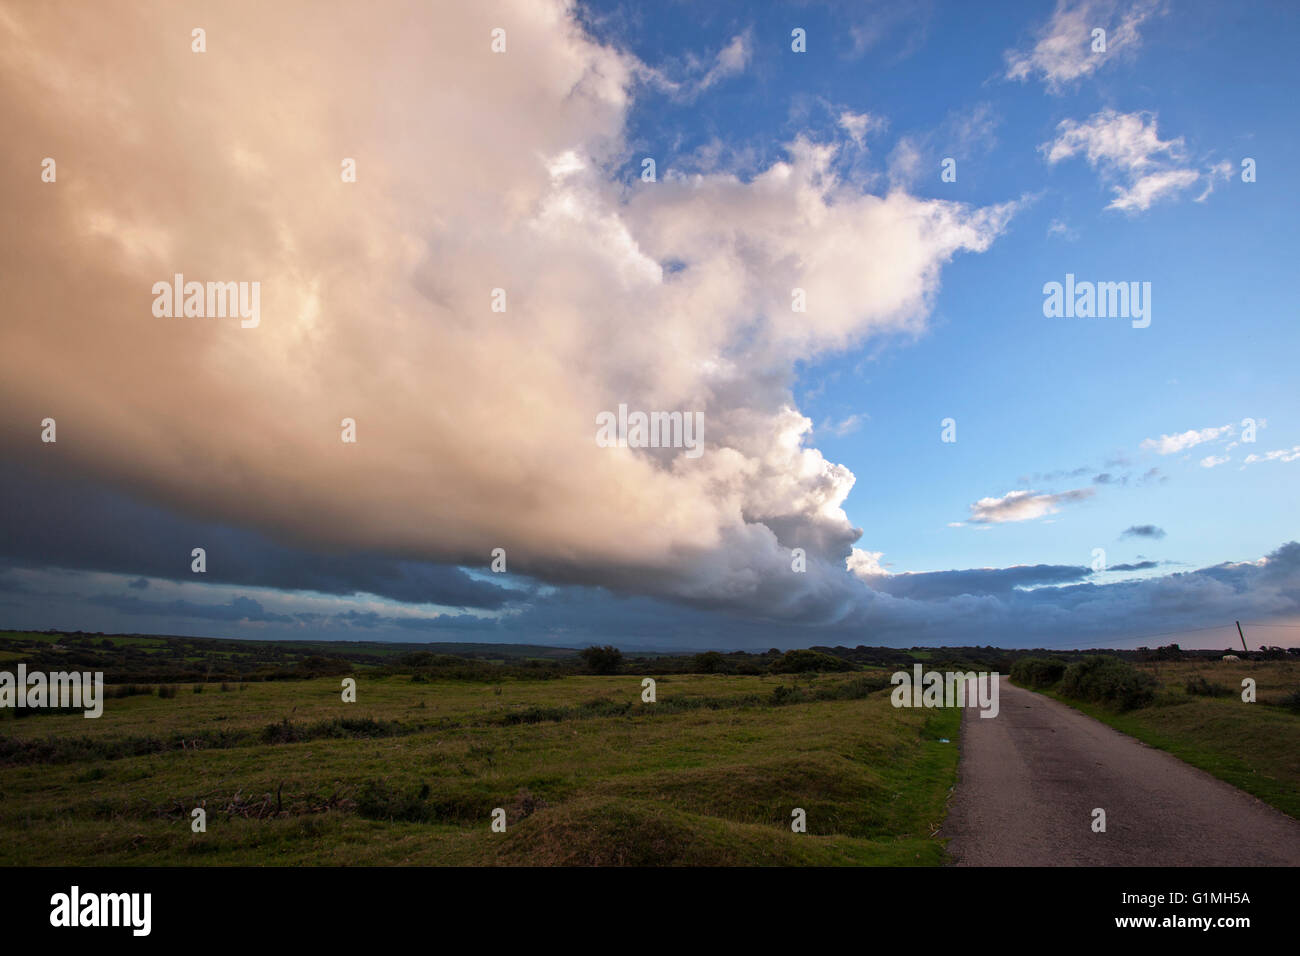 Huge cloud formation over Bodmin moor,blue sky with sunset yellow cloud above  moorland road runs parallel - Stock Image